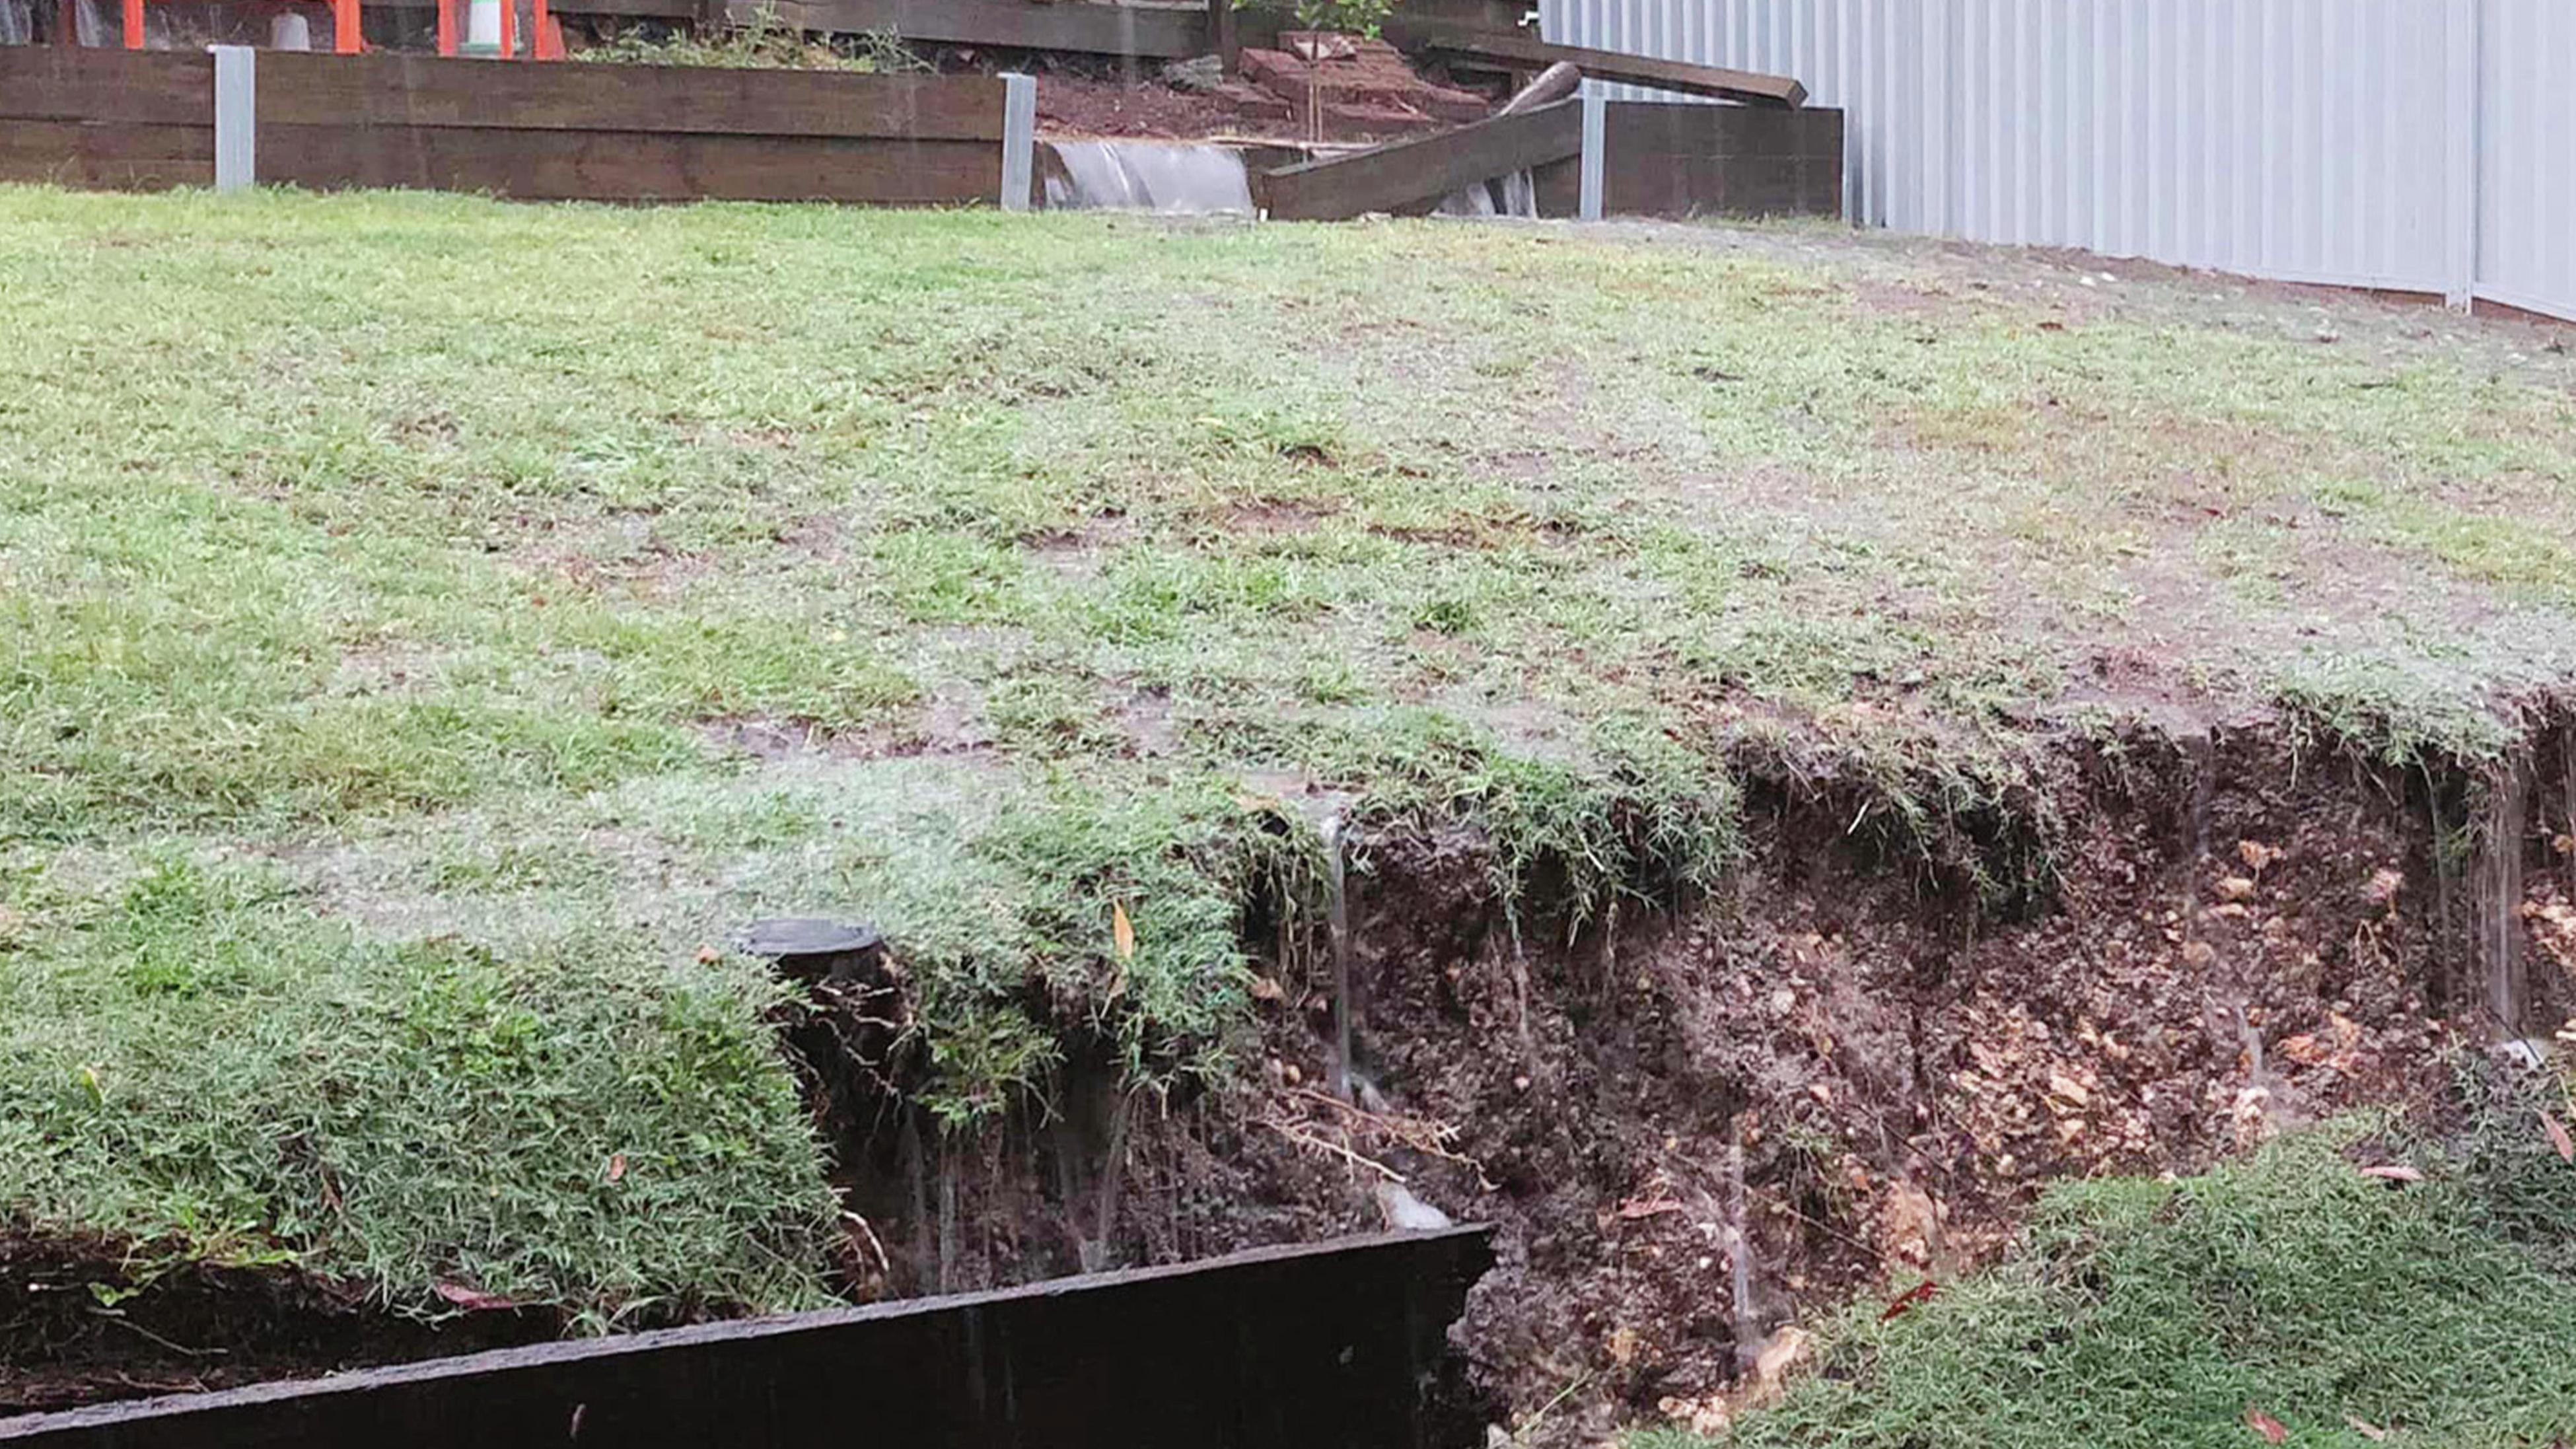 A sloping backyard with a large ditch dug out of it at the bottom